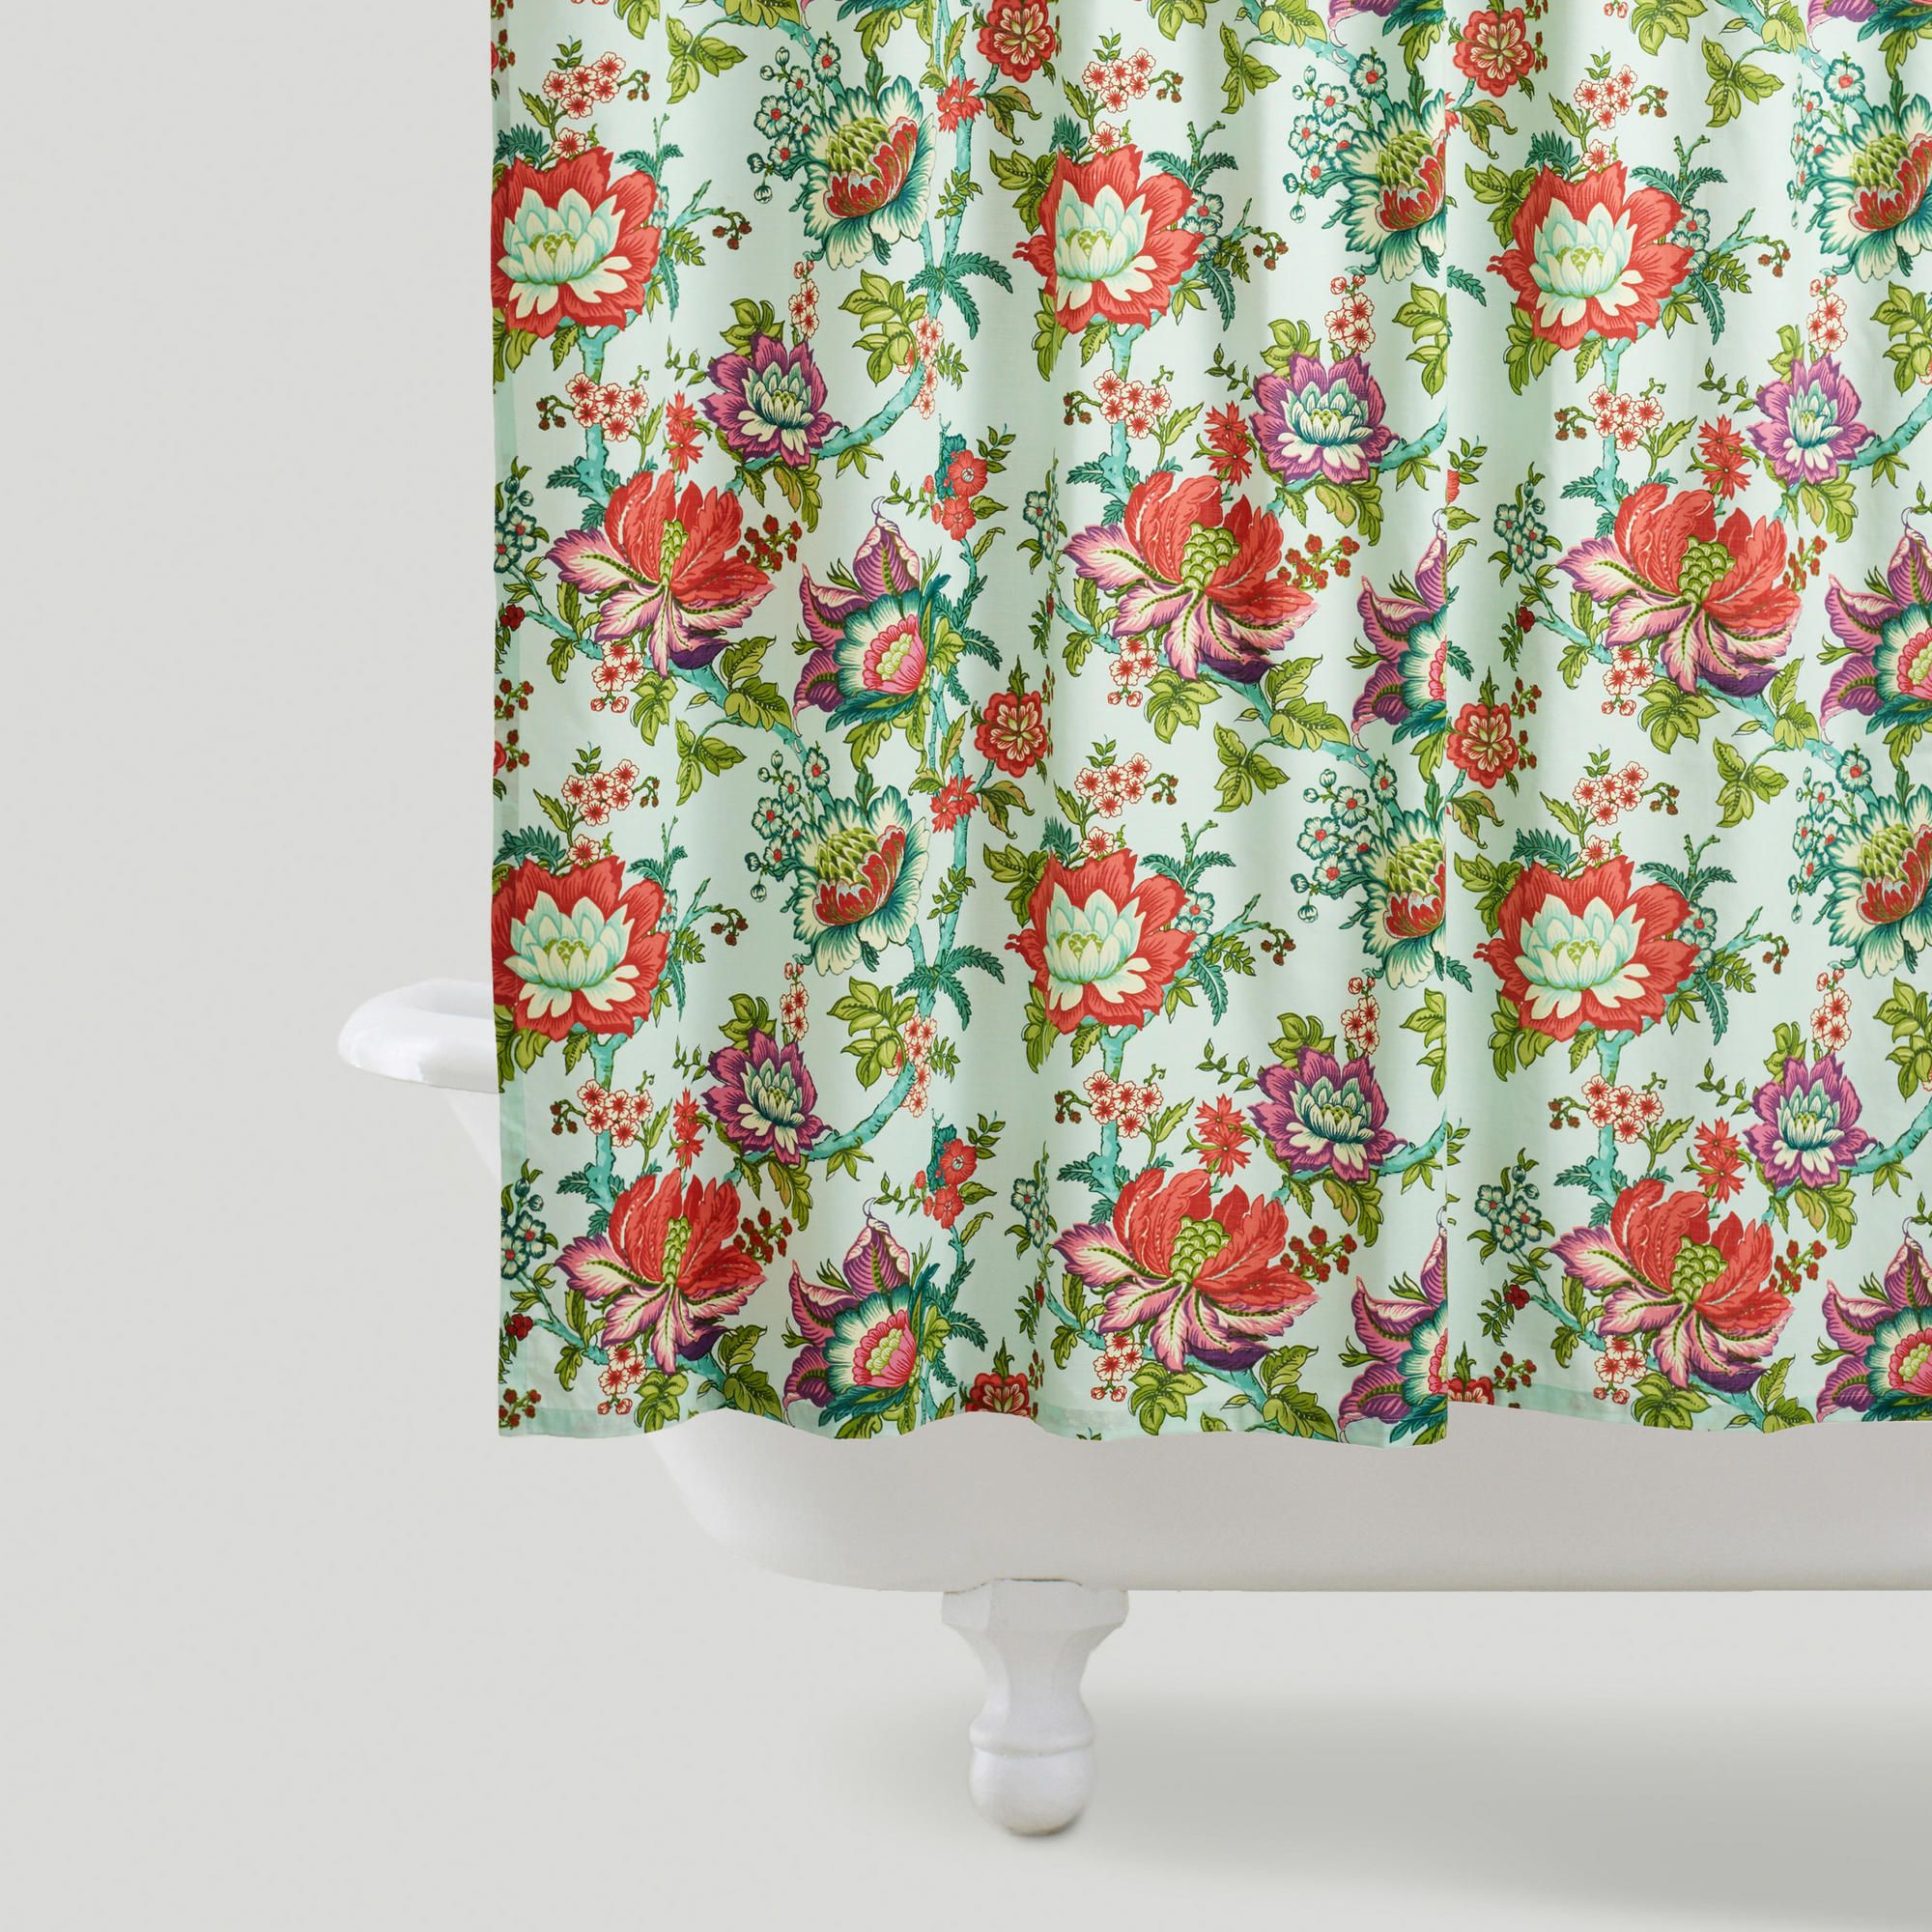 Victorian Floral Shower Curtain Floral Shower Curtains Curtain